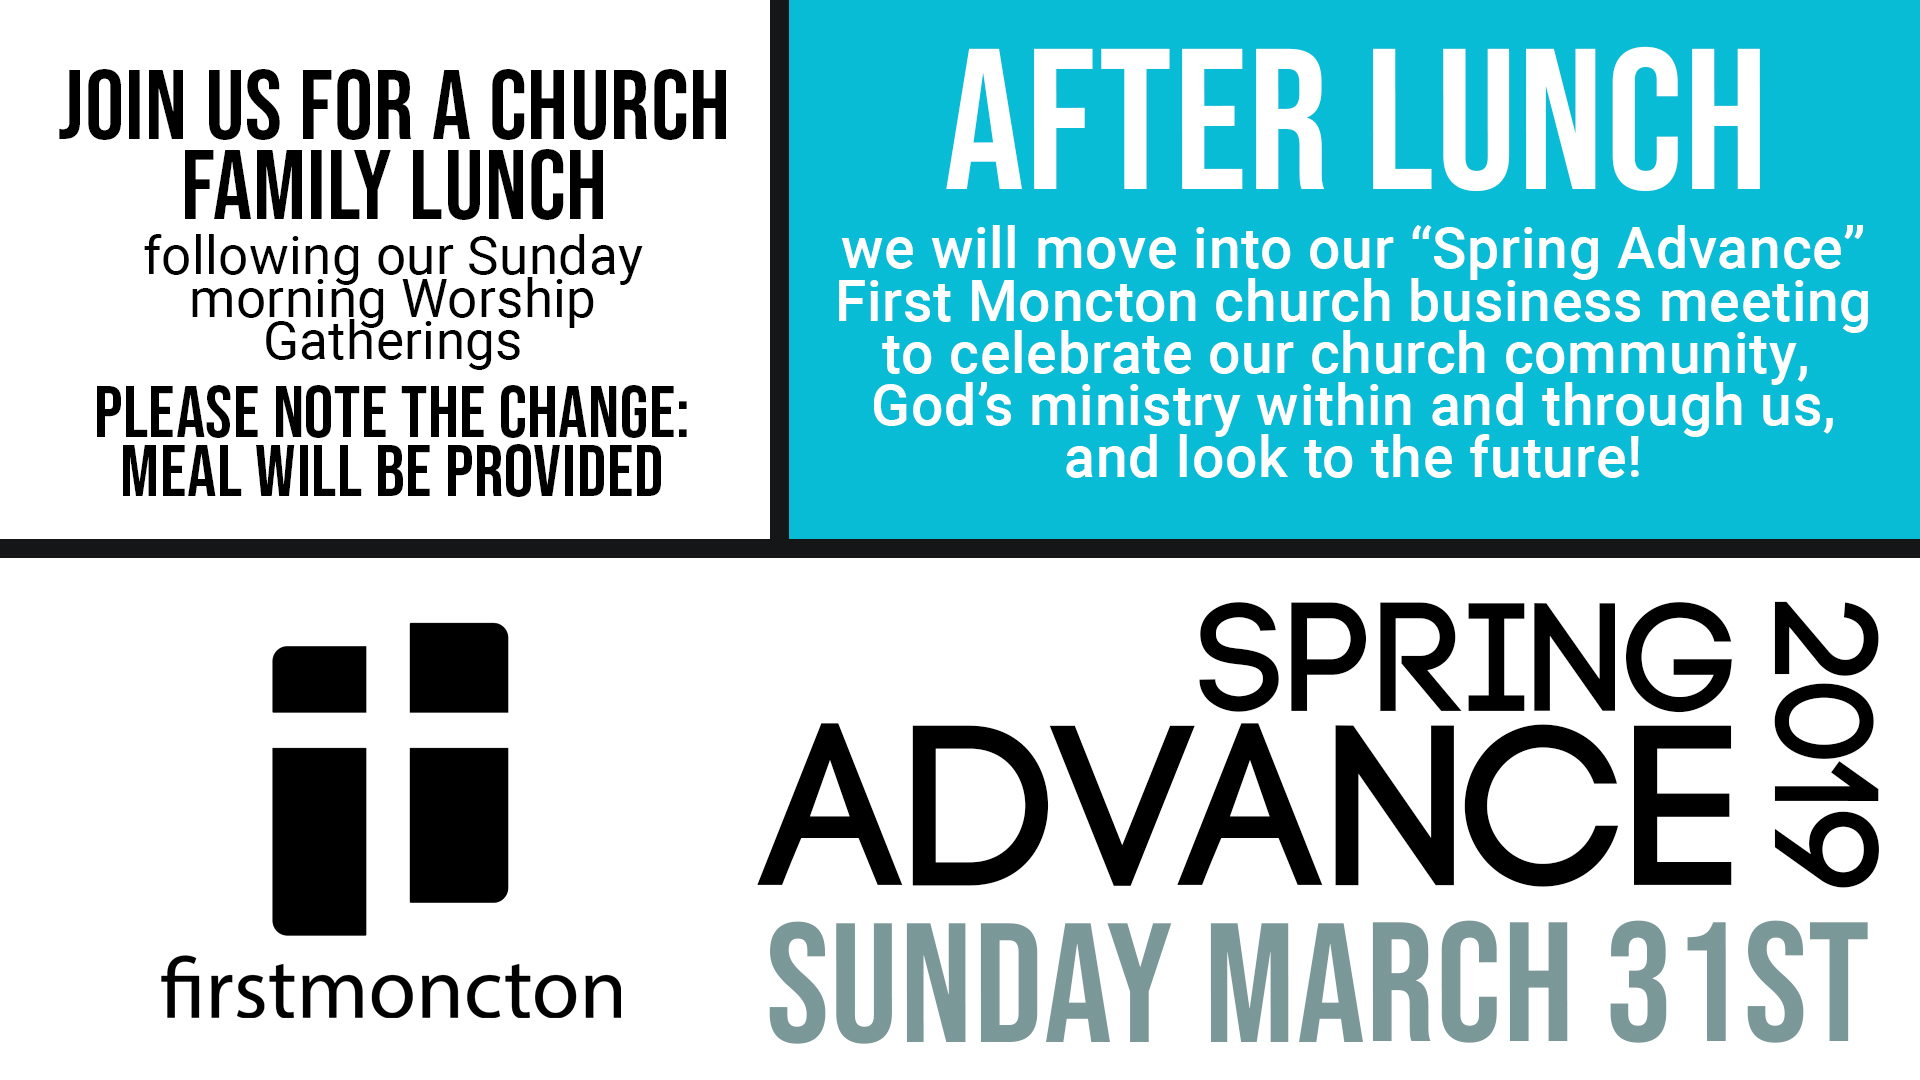 Spring Advance Announcement Slide ADJUSTED MAR 22nd.jpg